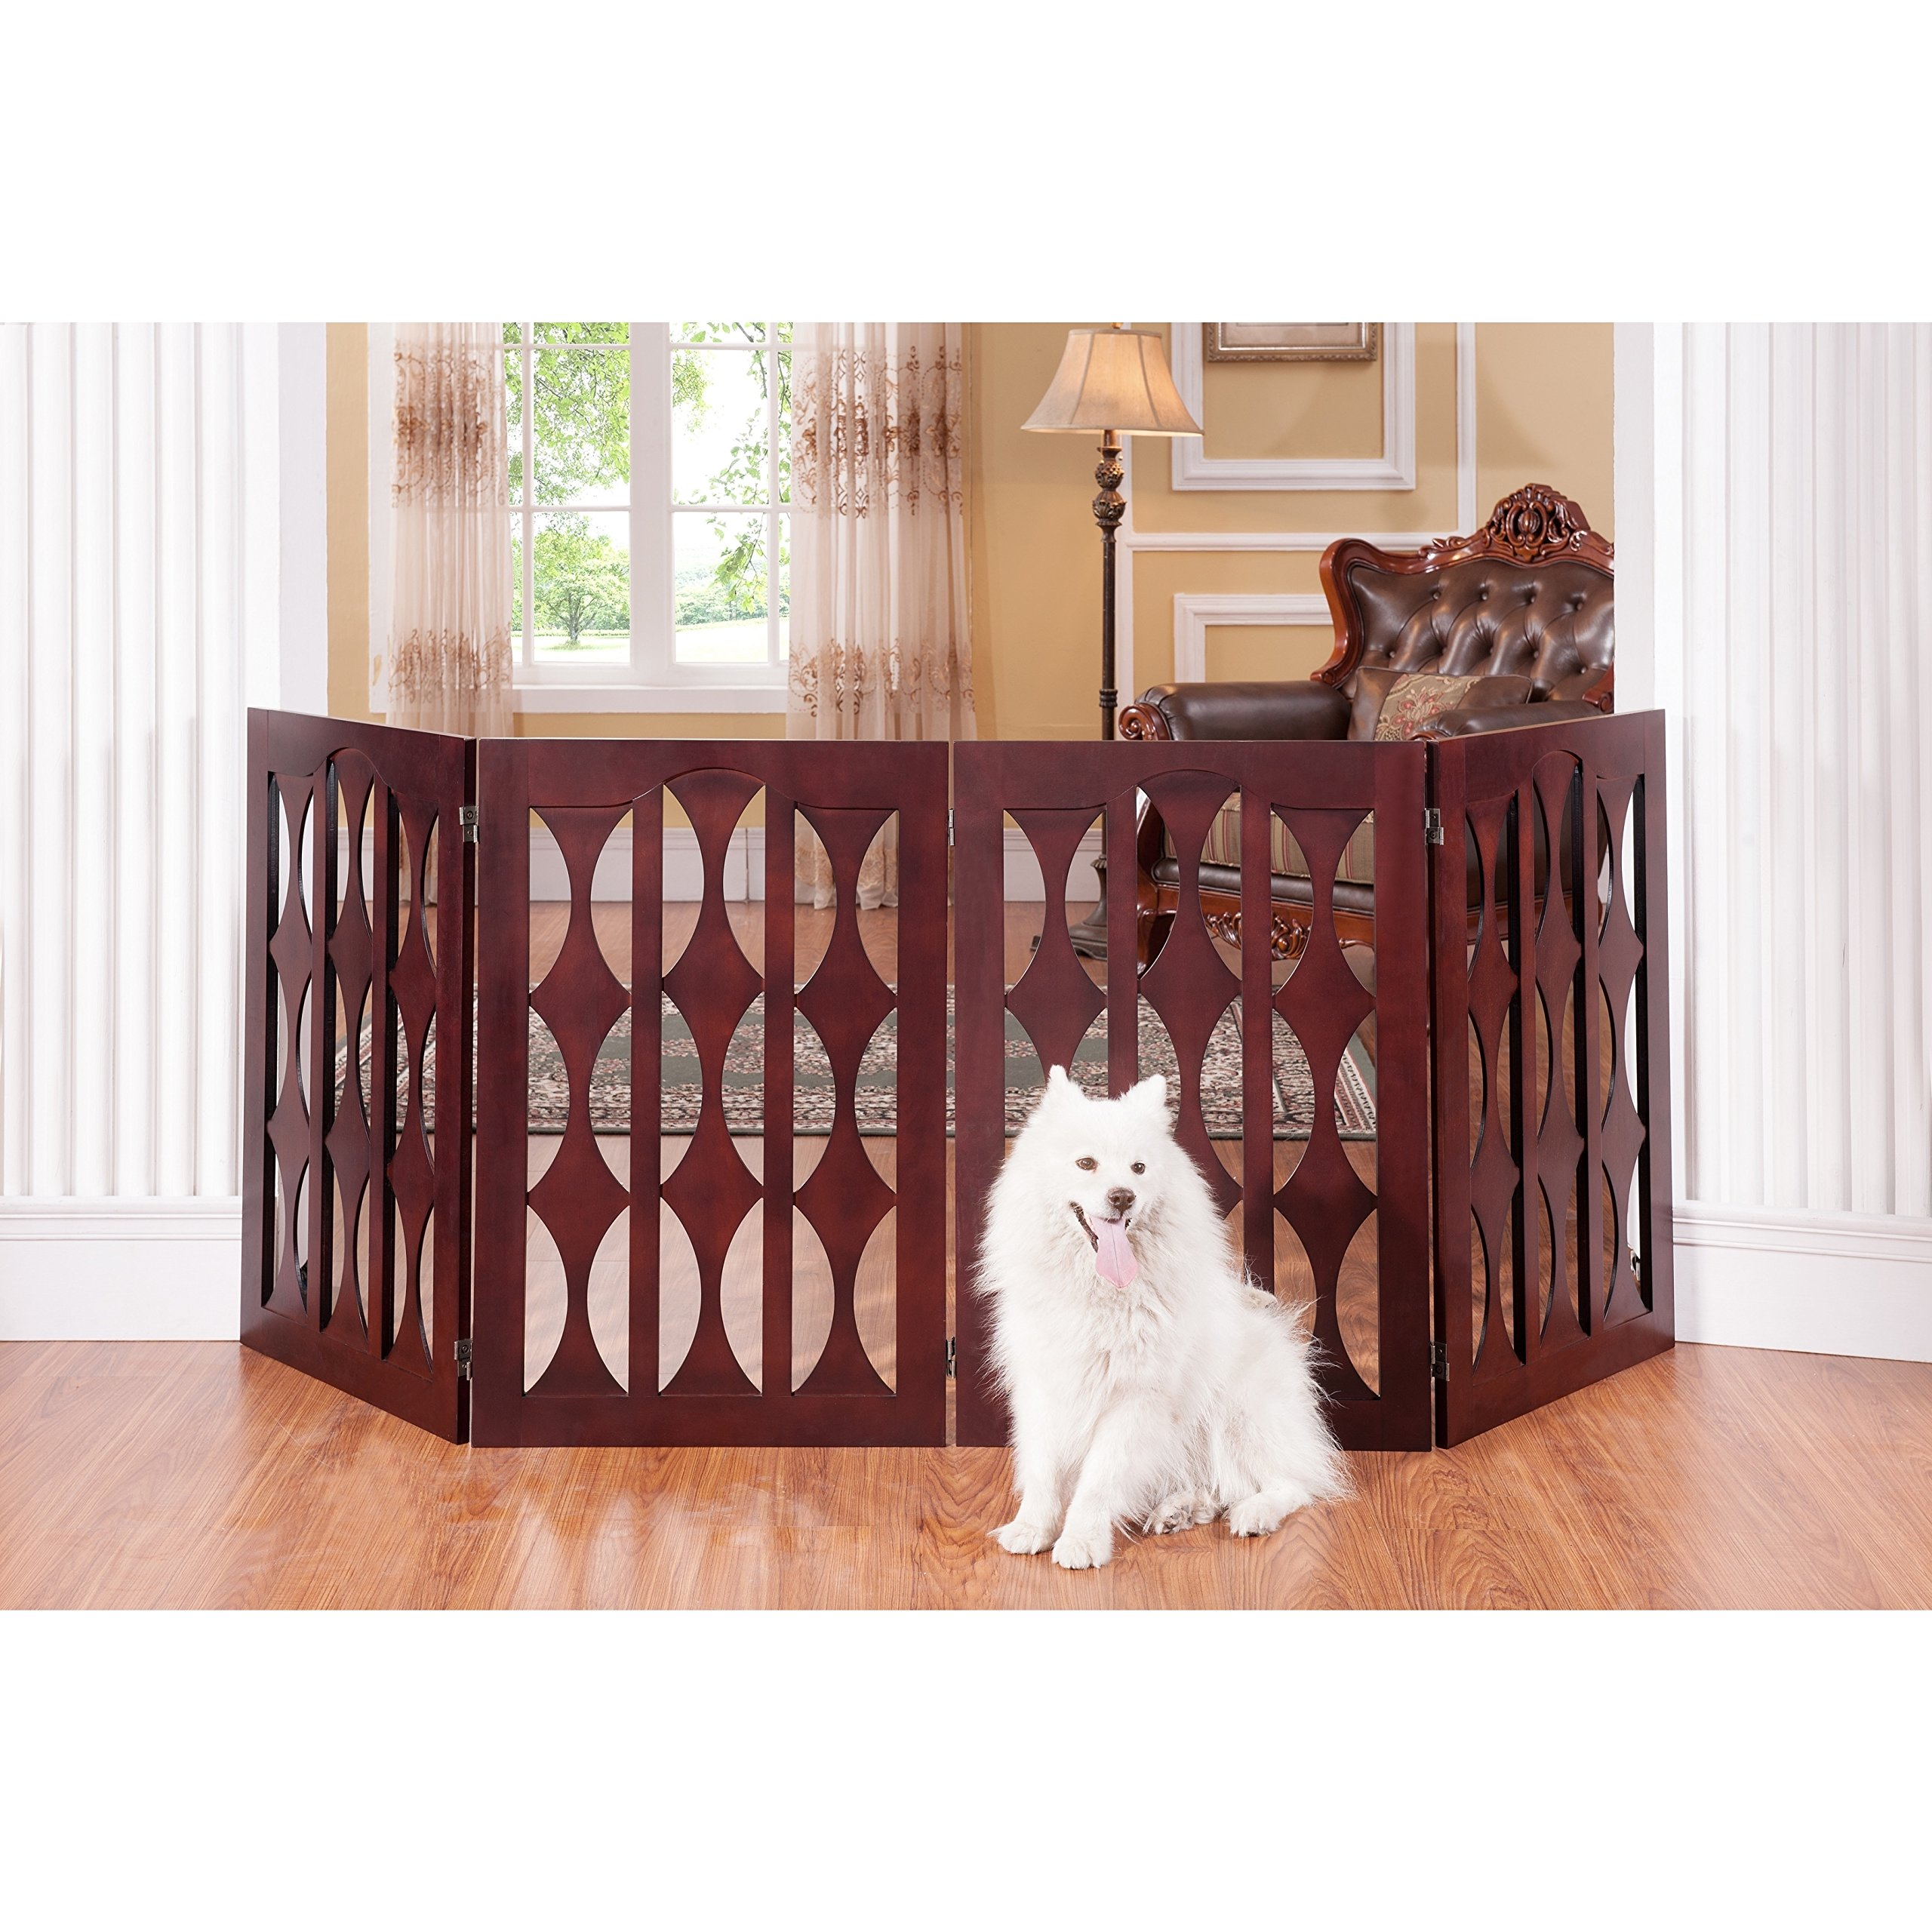 Elegant Home Fashions Agatha 4-panel 36-inch Pet Gate by Elegant Home Fashions